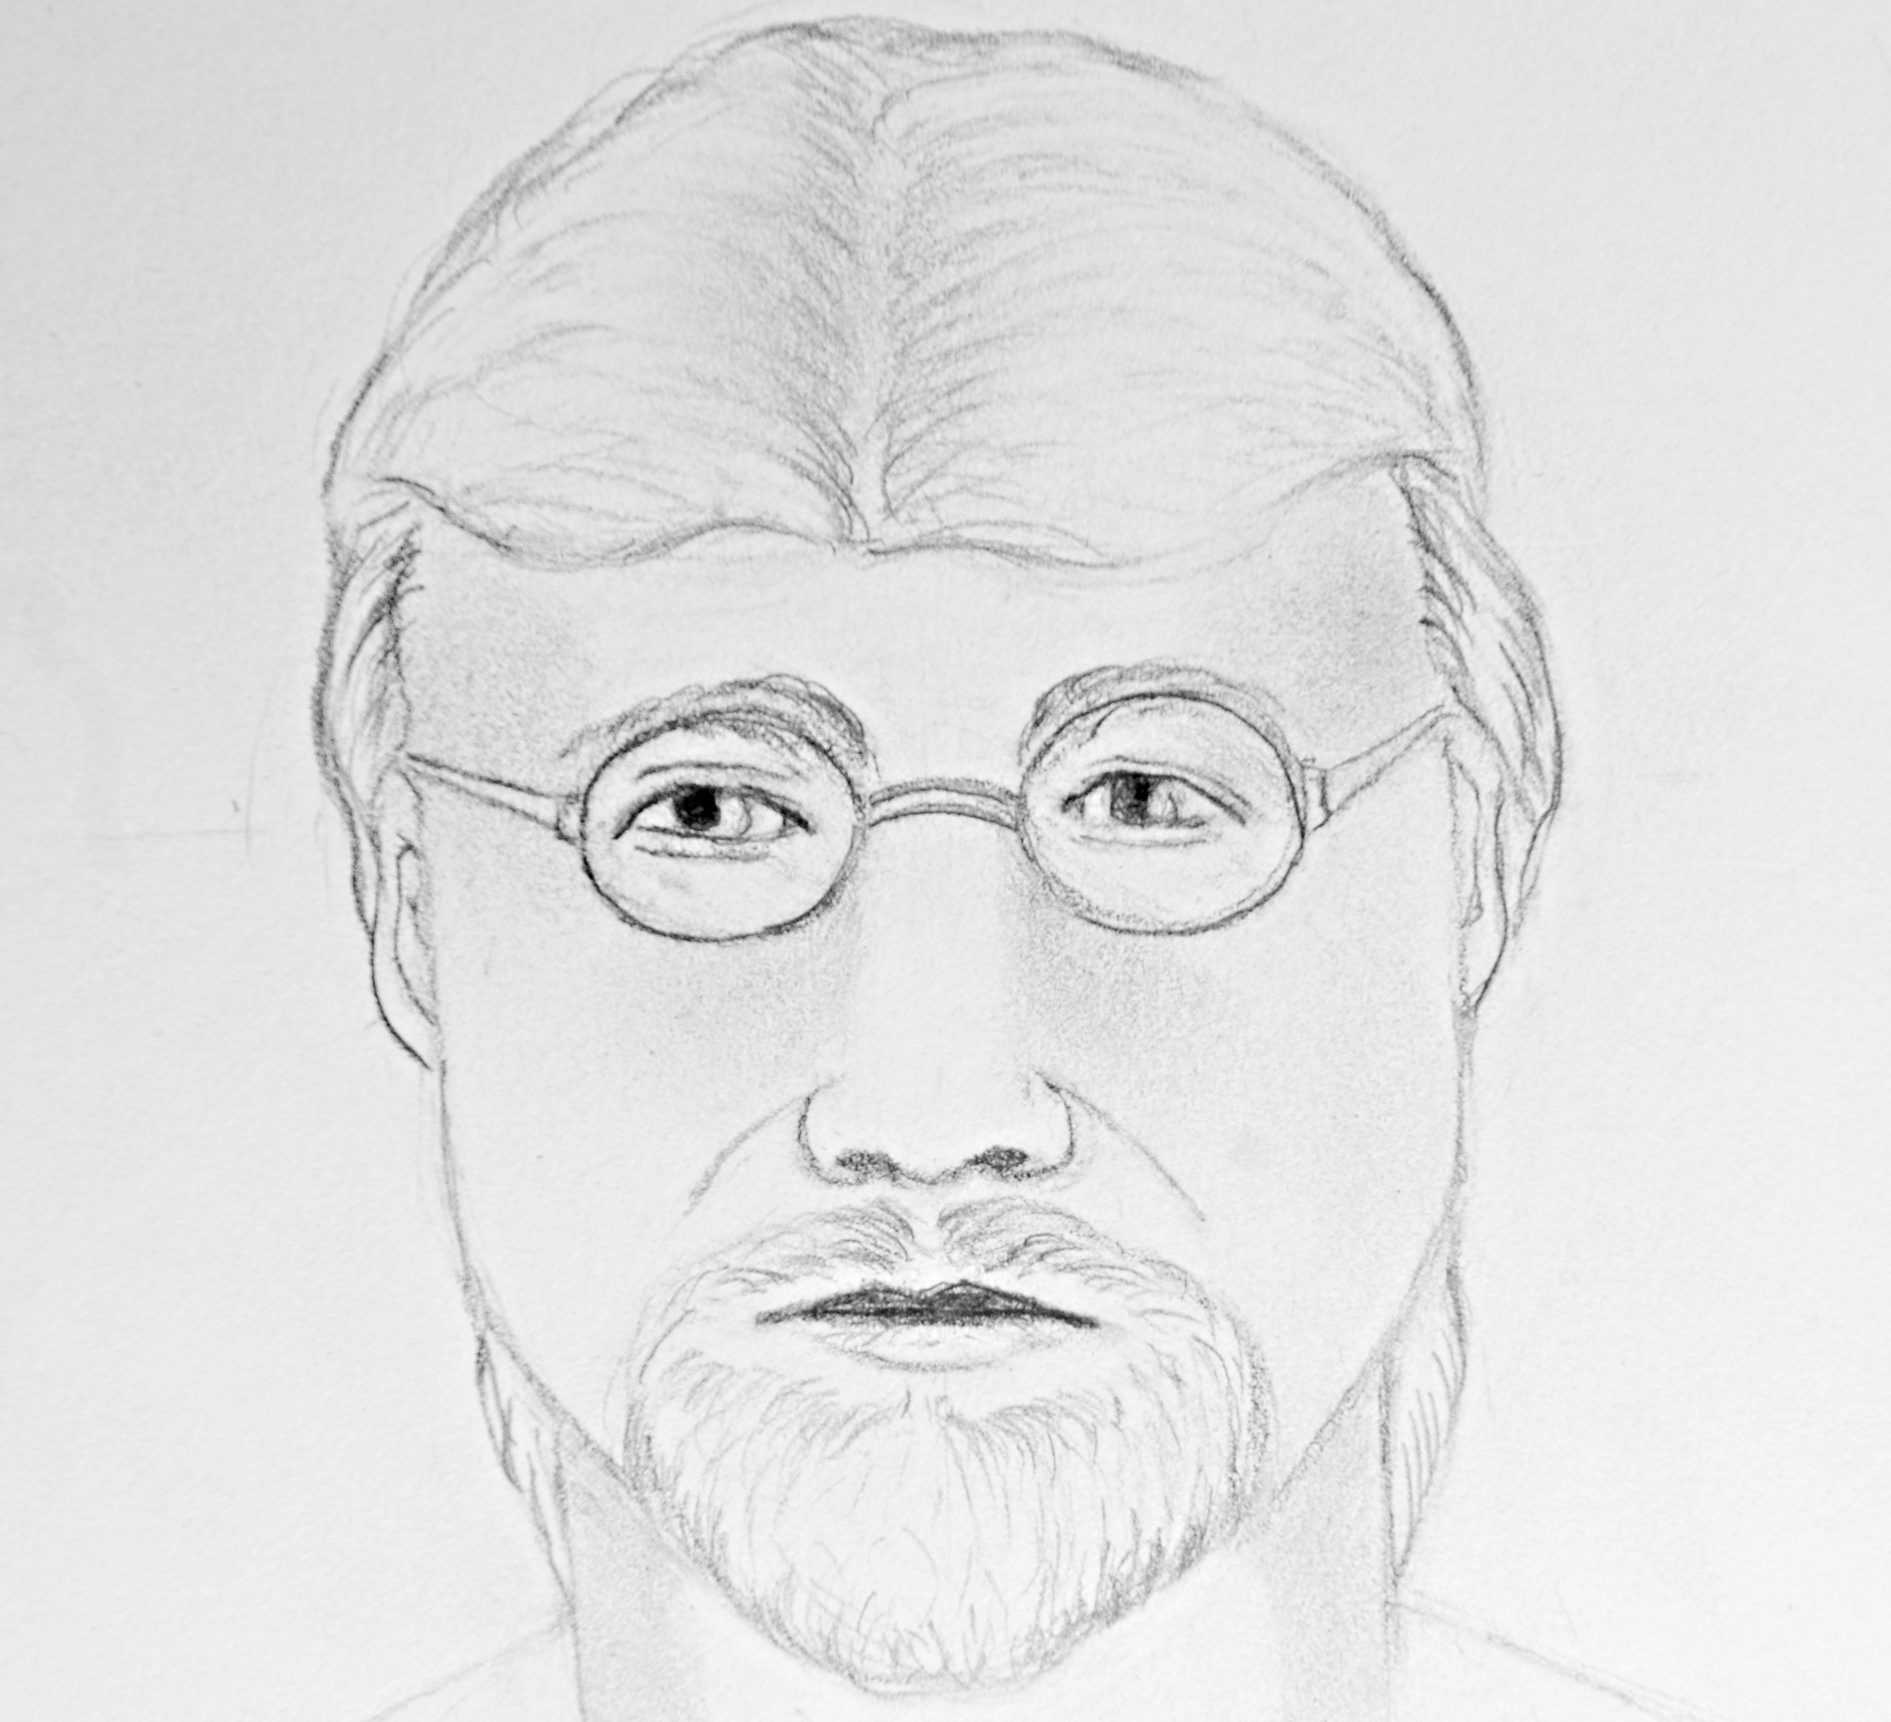 Victoria police have released a composite sketch of the man who tried to abduct a 10-year-old girl in late June